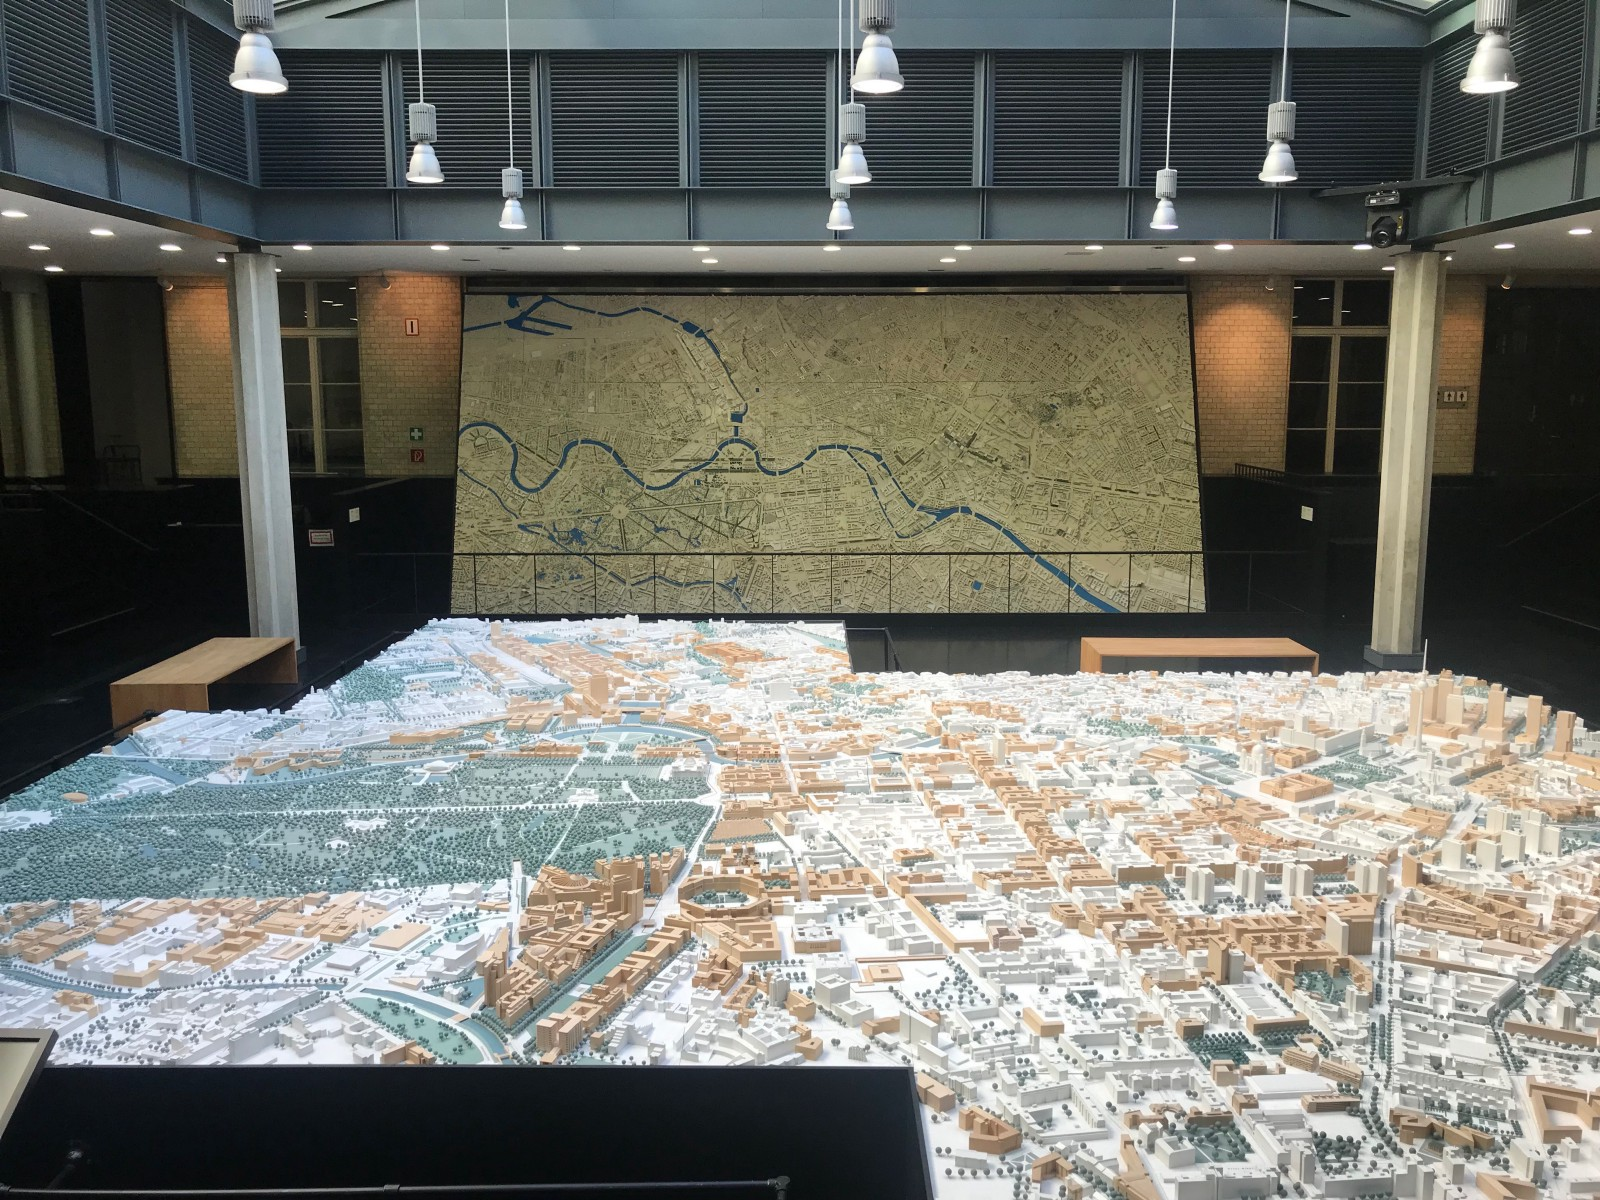 A 1:500 scale model of inner city Berlin in the foreground, and a 1:1000 scale larger area of Berlin in the background.